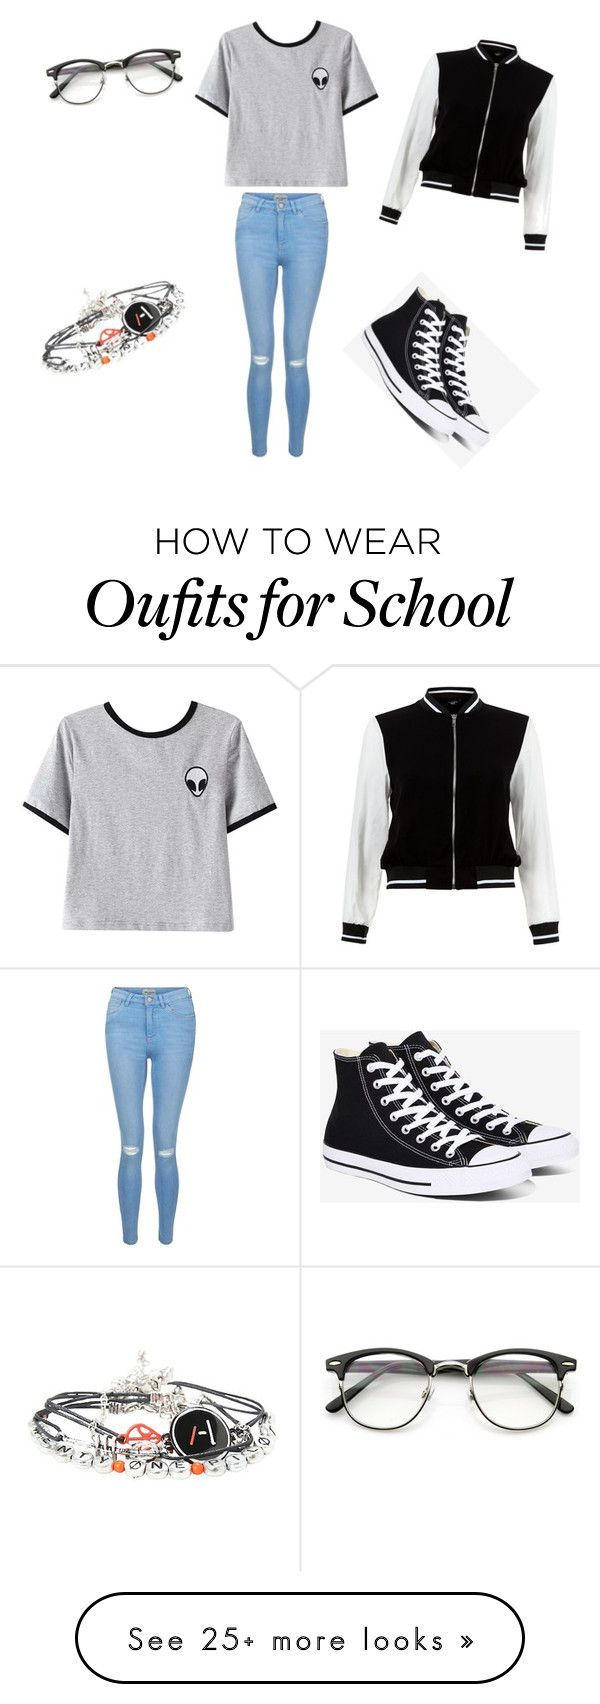 """School outfit"" by nika-rancigaj on Polyvore featuring New Look, Chicnova Fashion and Converse"